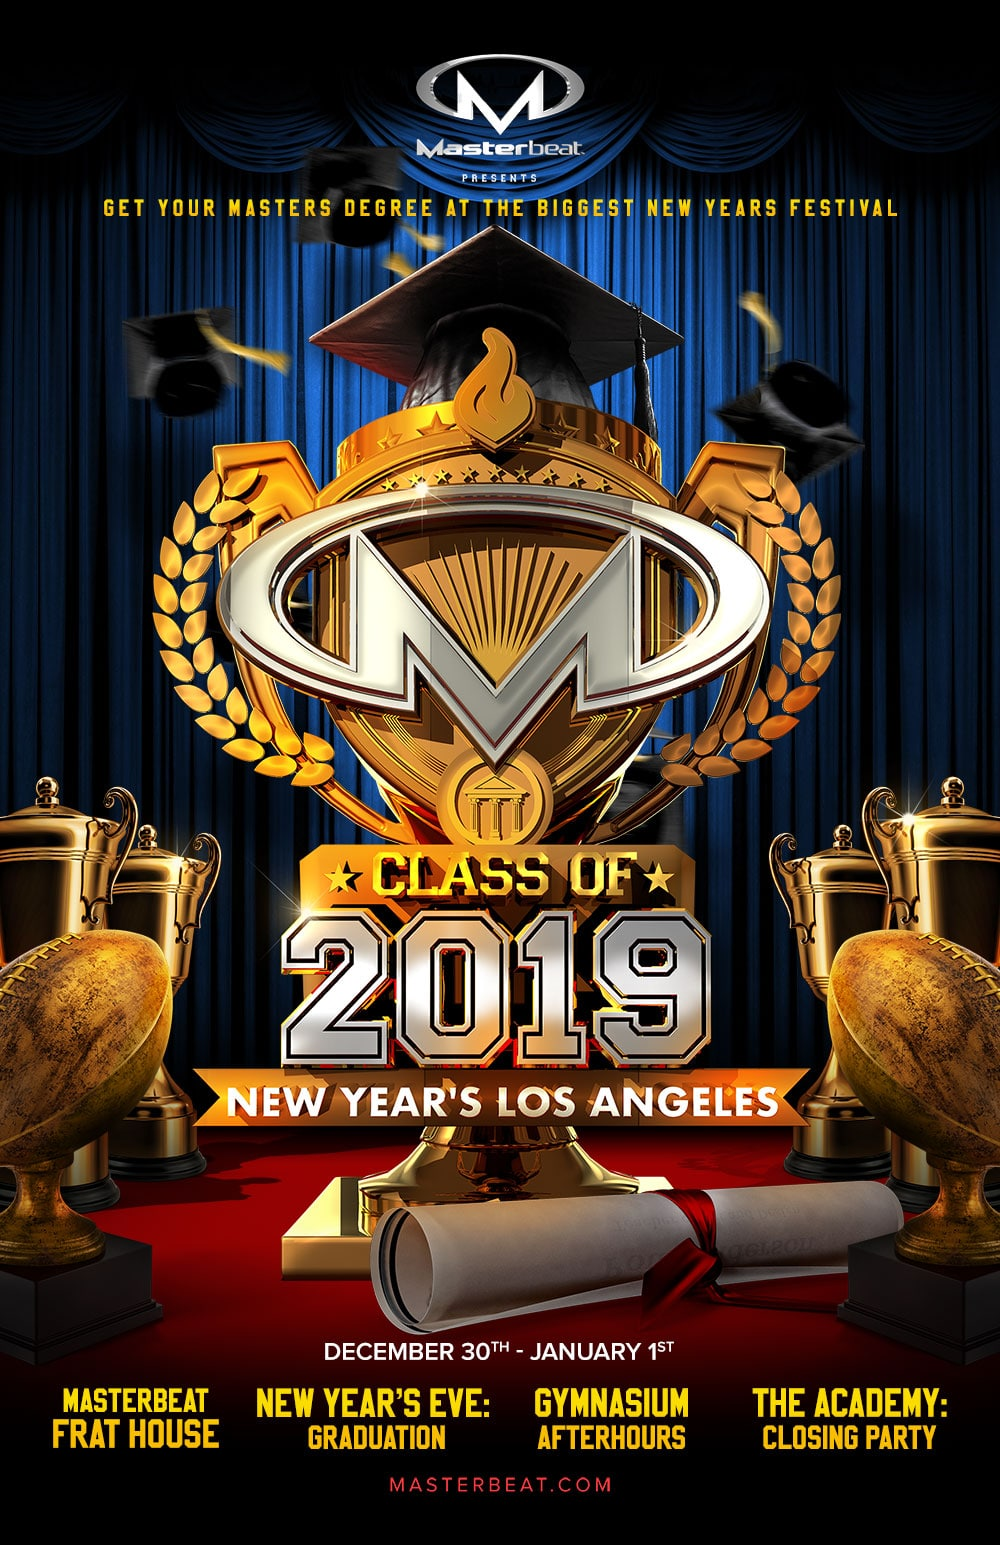 Masterbeat Class of 2019: New Year's Los Angeles - Masterbeat